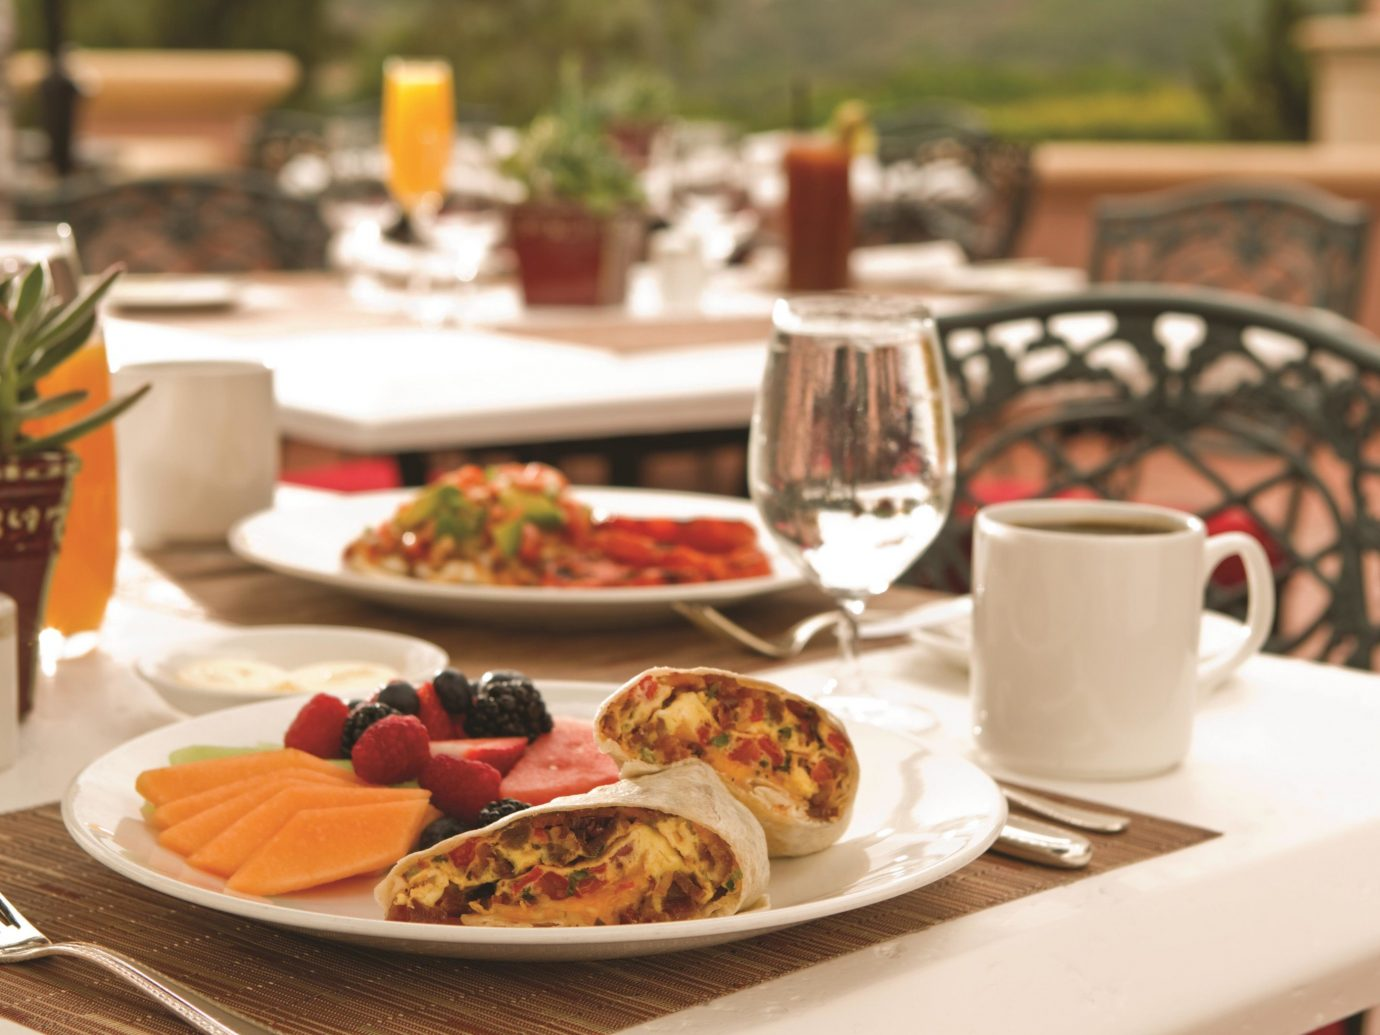 Breakfast Is Served At Fairmont Grand Del Mar In San Diego, Ca